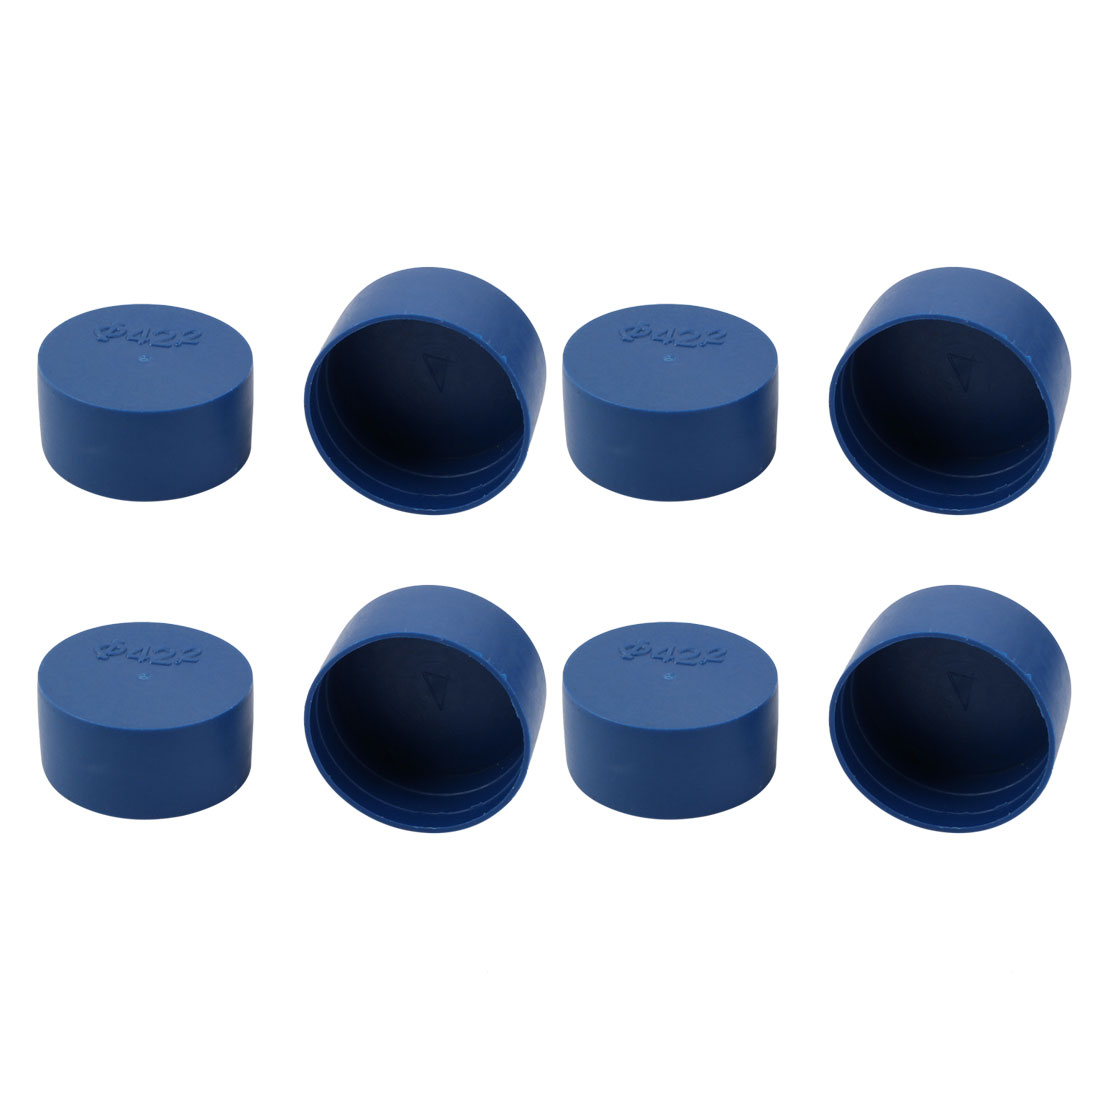 8pcs 42mm Inner Dia PE Plastic End Cap Bolt Thread Protector Tube Cover Blue